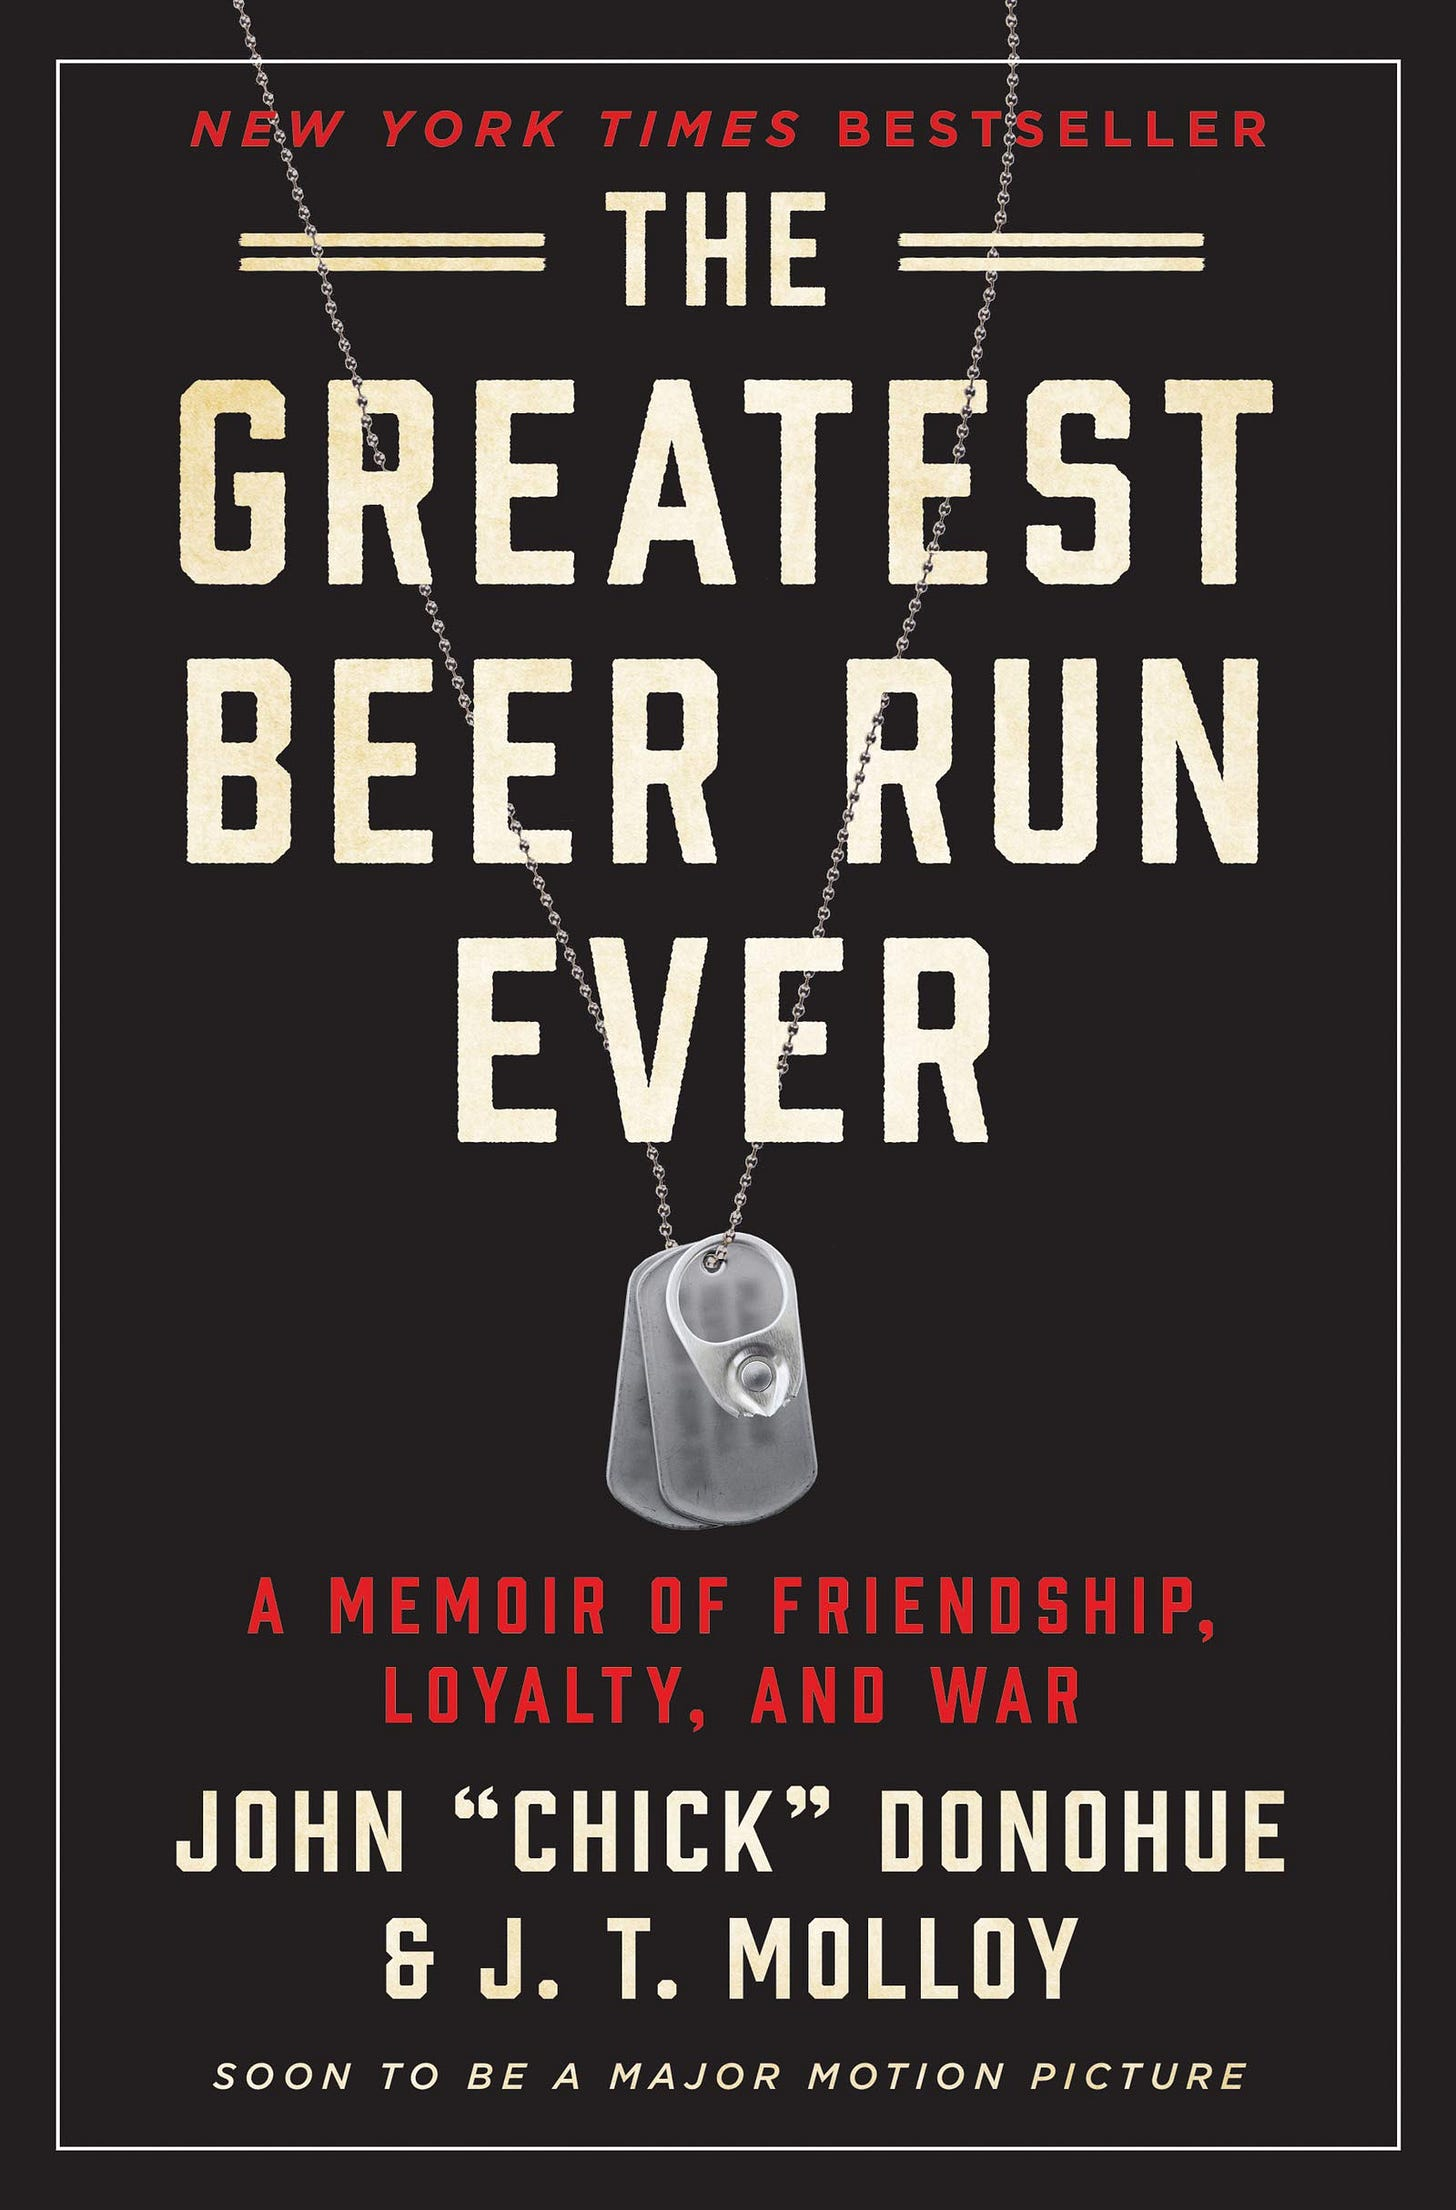 """Amazon.com: The Greatest Beer Run Ever: A Memoir of Friendship, Loyalty,  and War: 9780062995469: Donohue, John """"Chick"""", Molloy, J. T.: Books"""